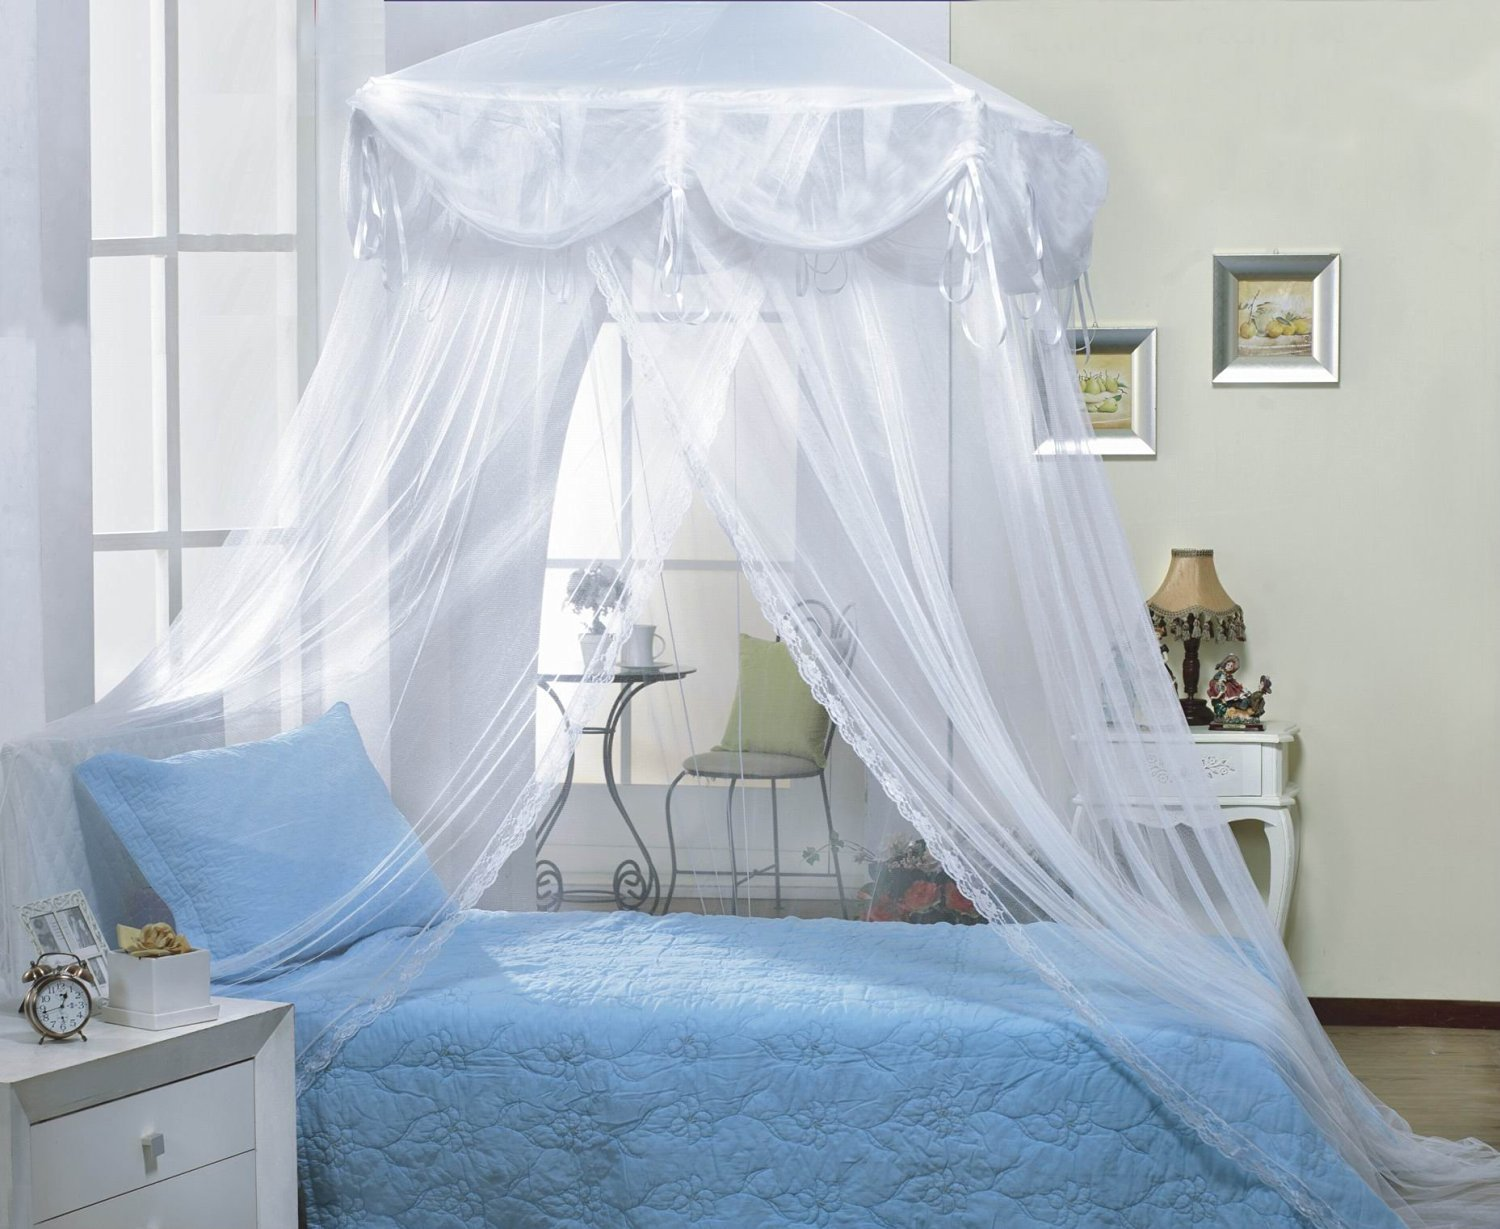 amazoncom white four corner square princess bed canopy by sid kitchen u0026 dining